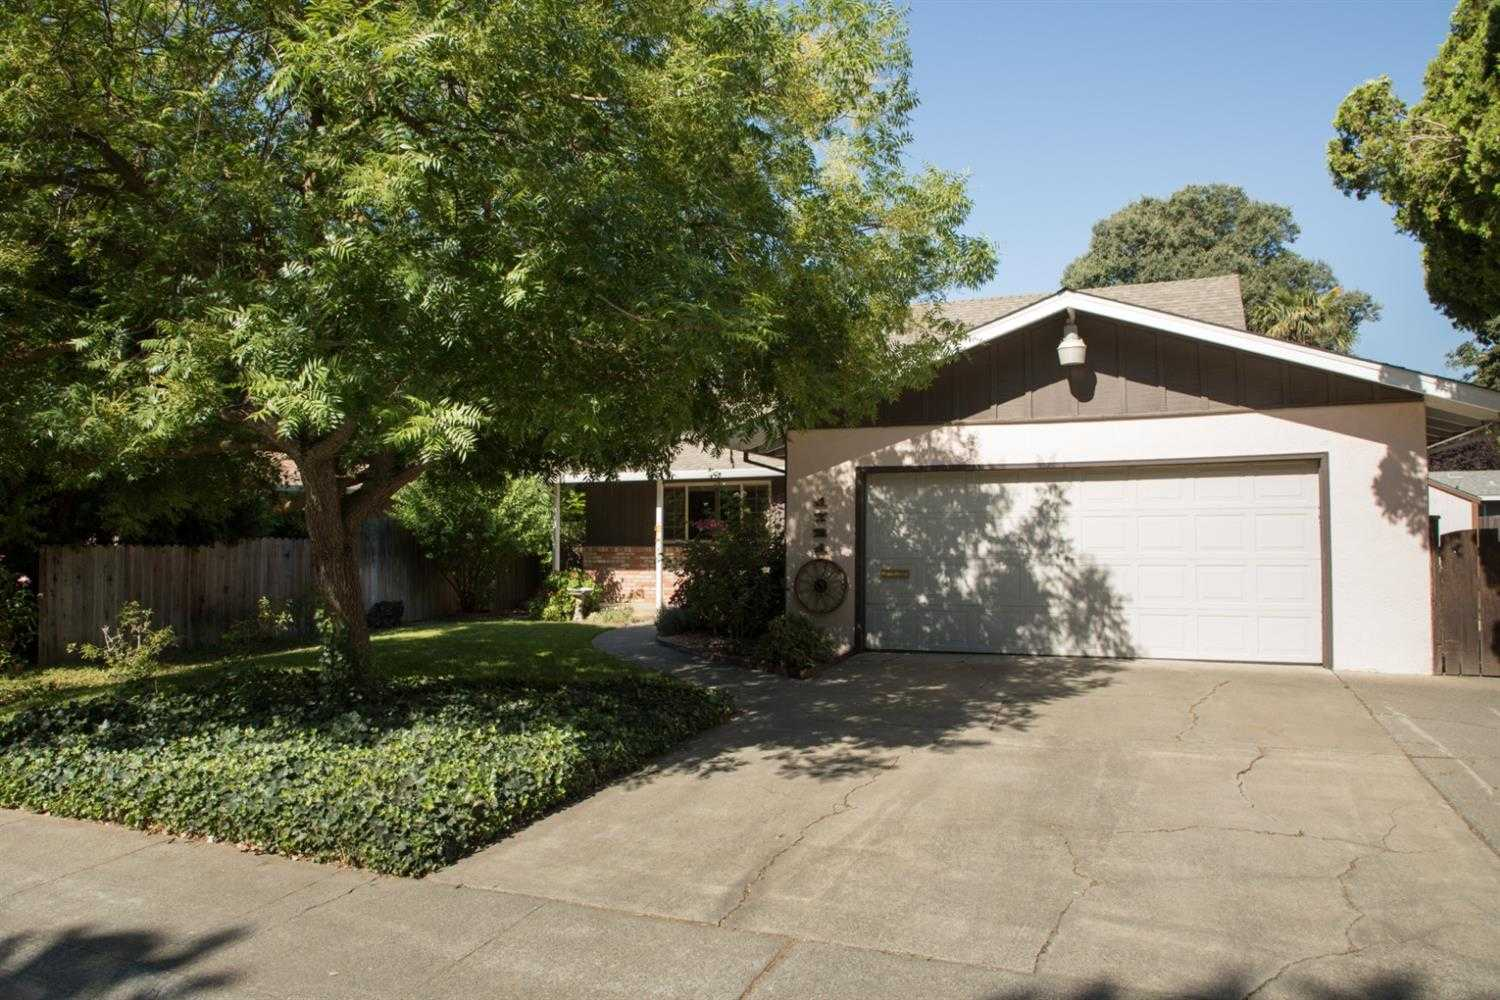 $650,000 - 3Br/2Ba -  for Sale in Davis Manor, Davis